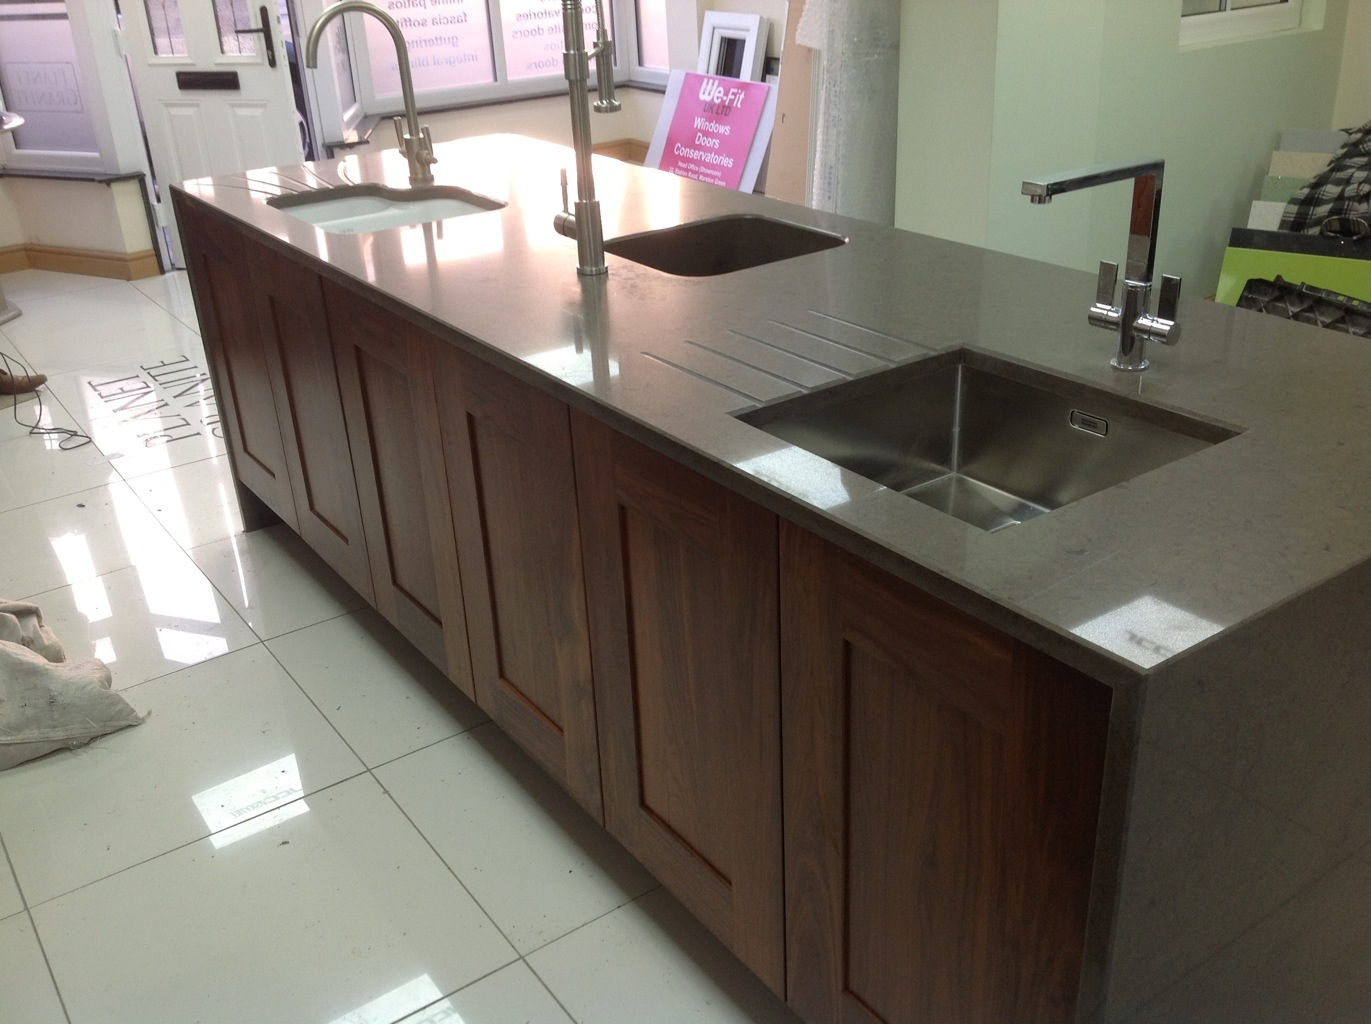 Silestone integrity sink with recess drainer - 20130306 082315 Jpg